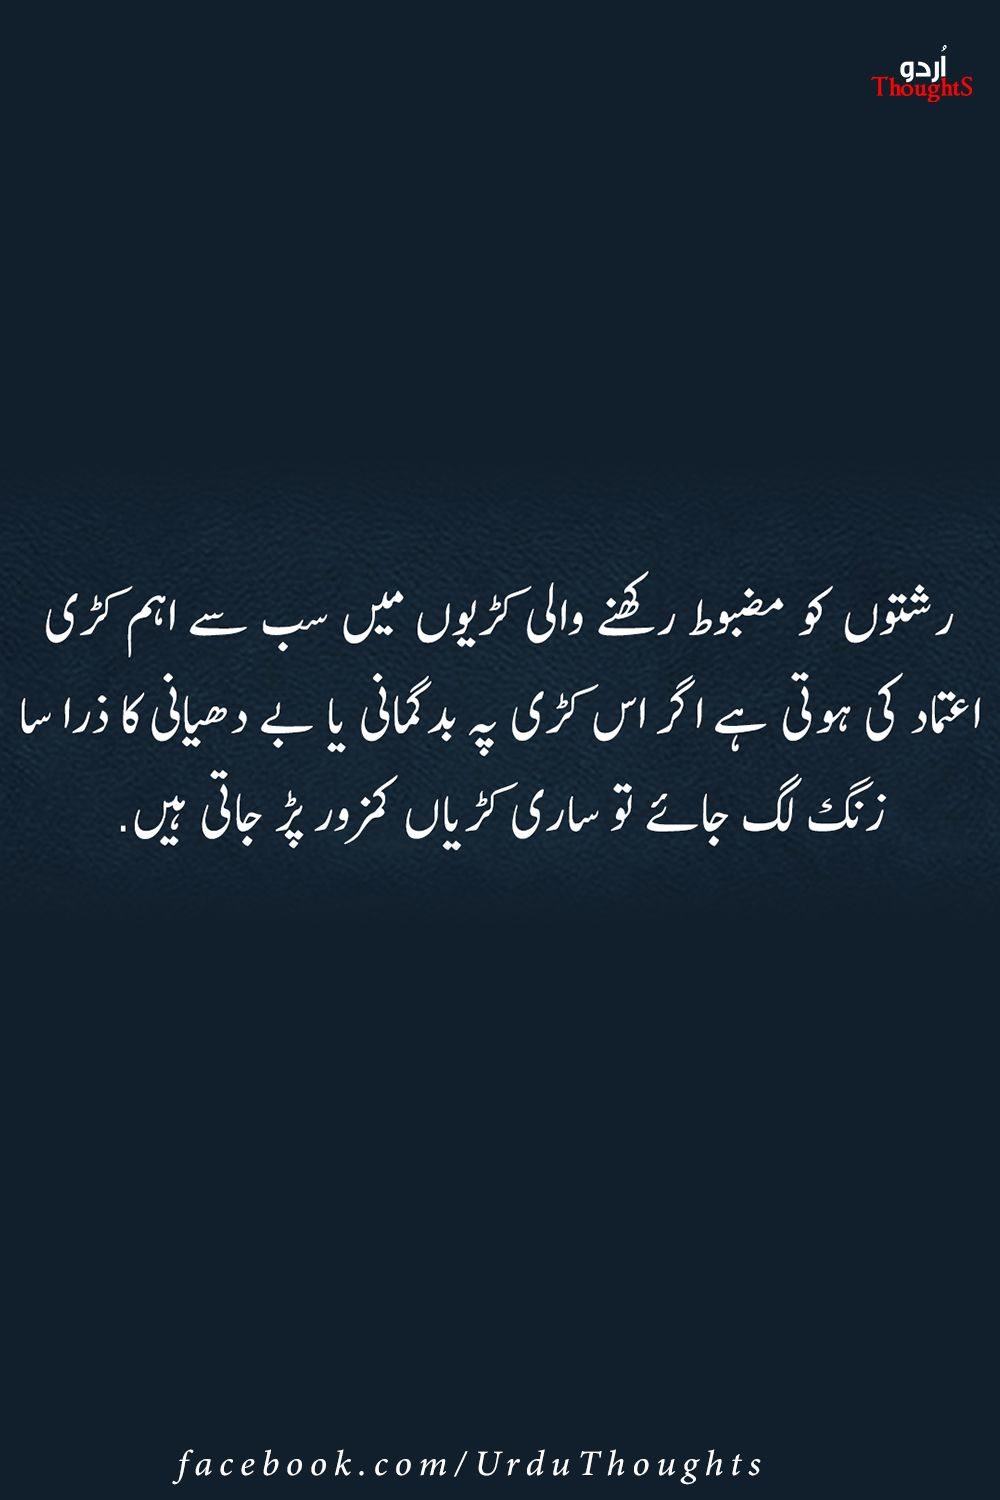 Rishty Urdu Quotes Islamic Messages Urdu Thoughts Good Morning Messages